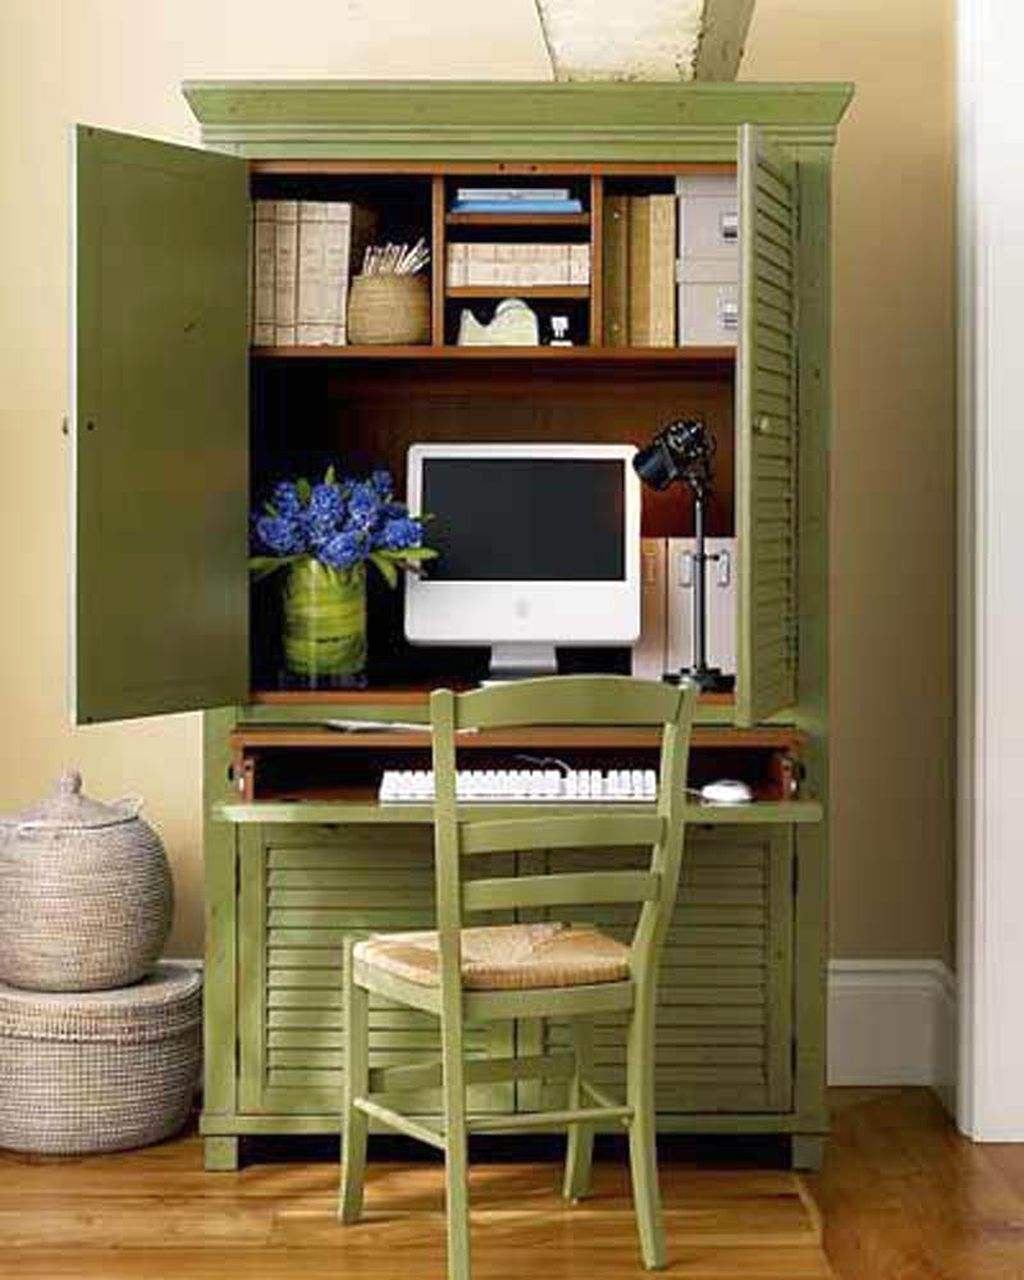 Green cupboard home office design ideas for small spaces - Small space decorating blog decor ...